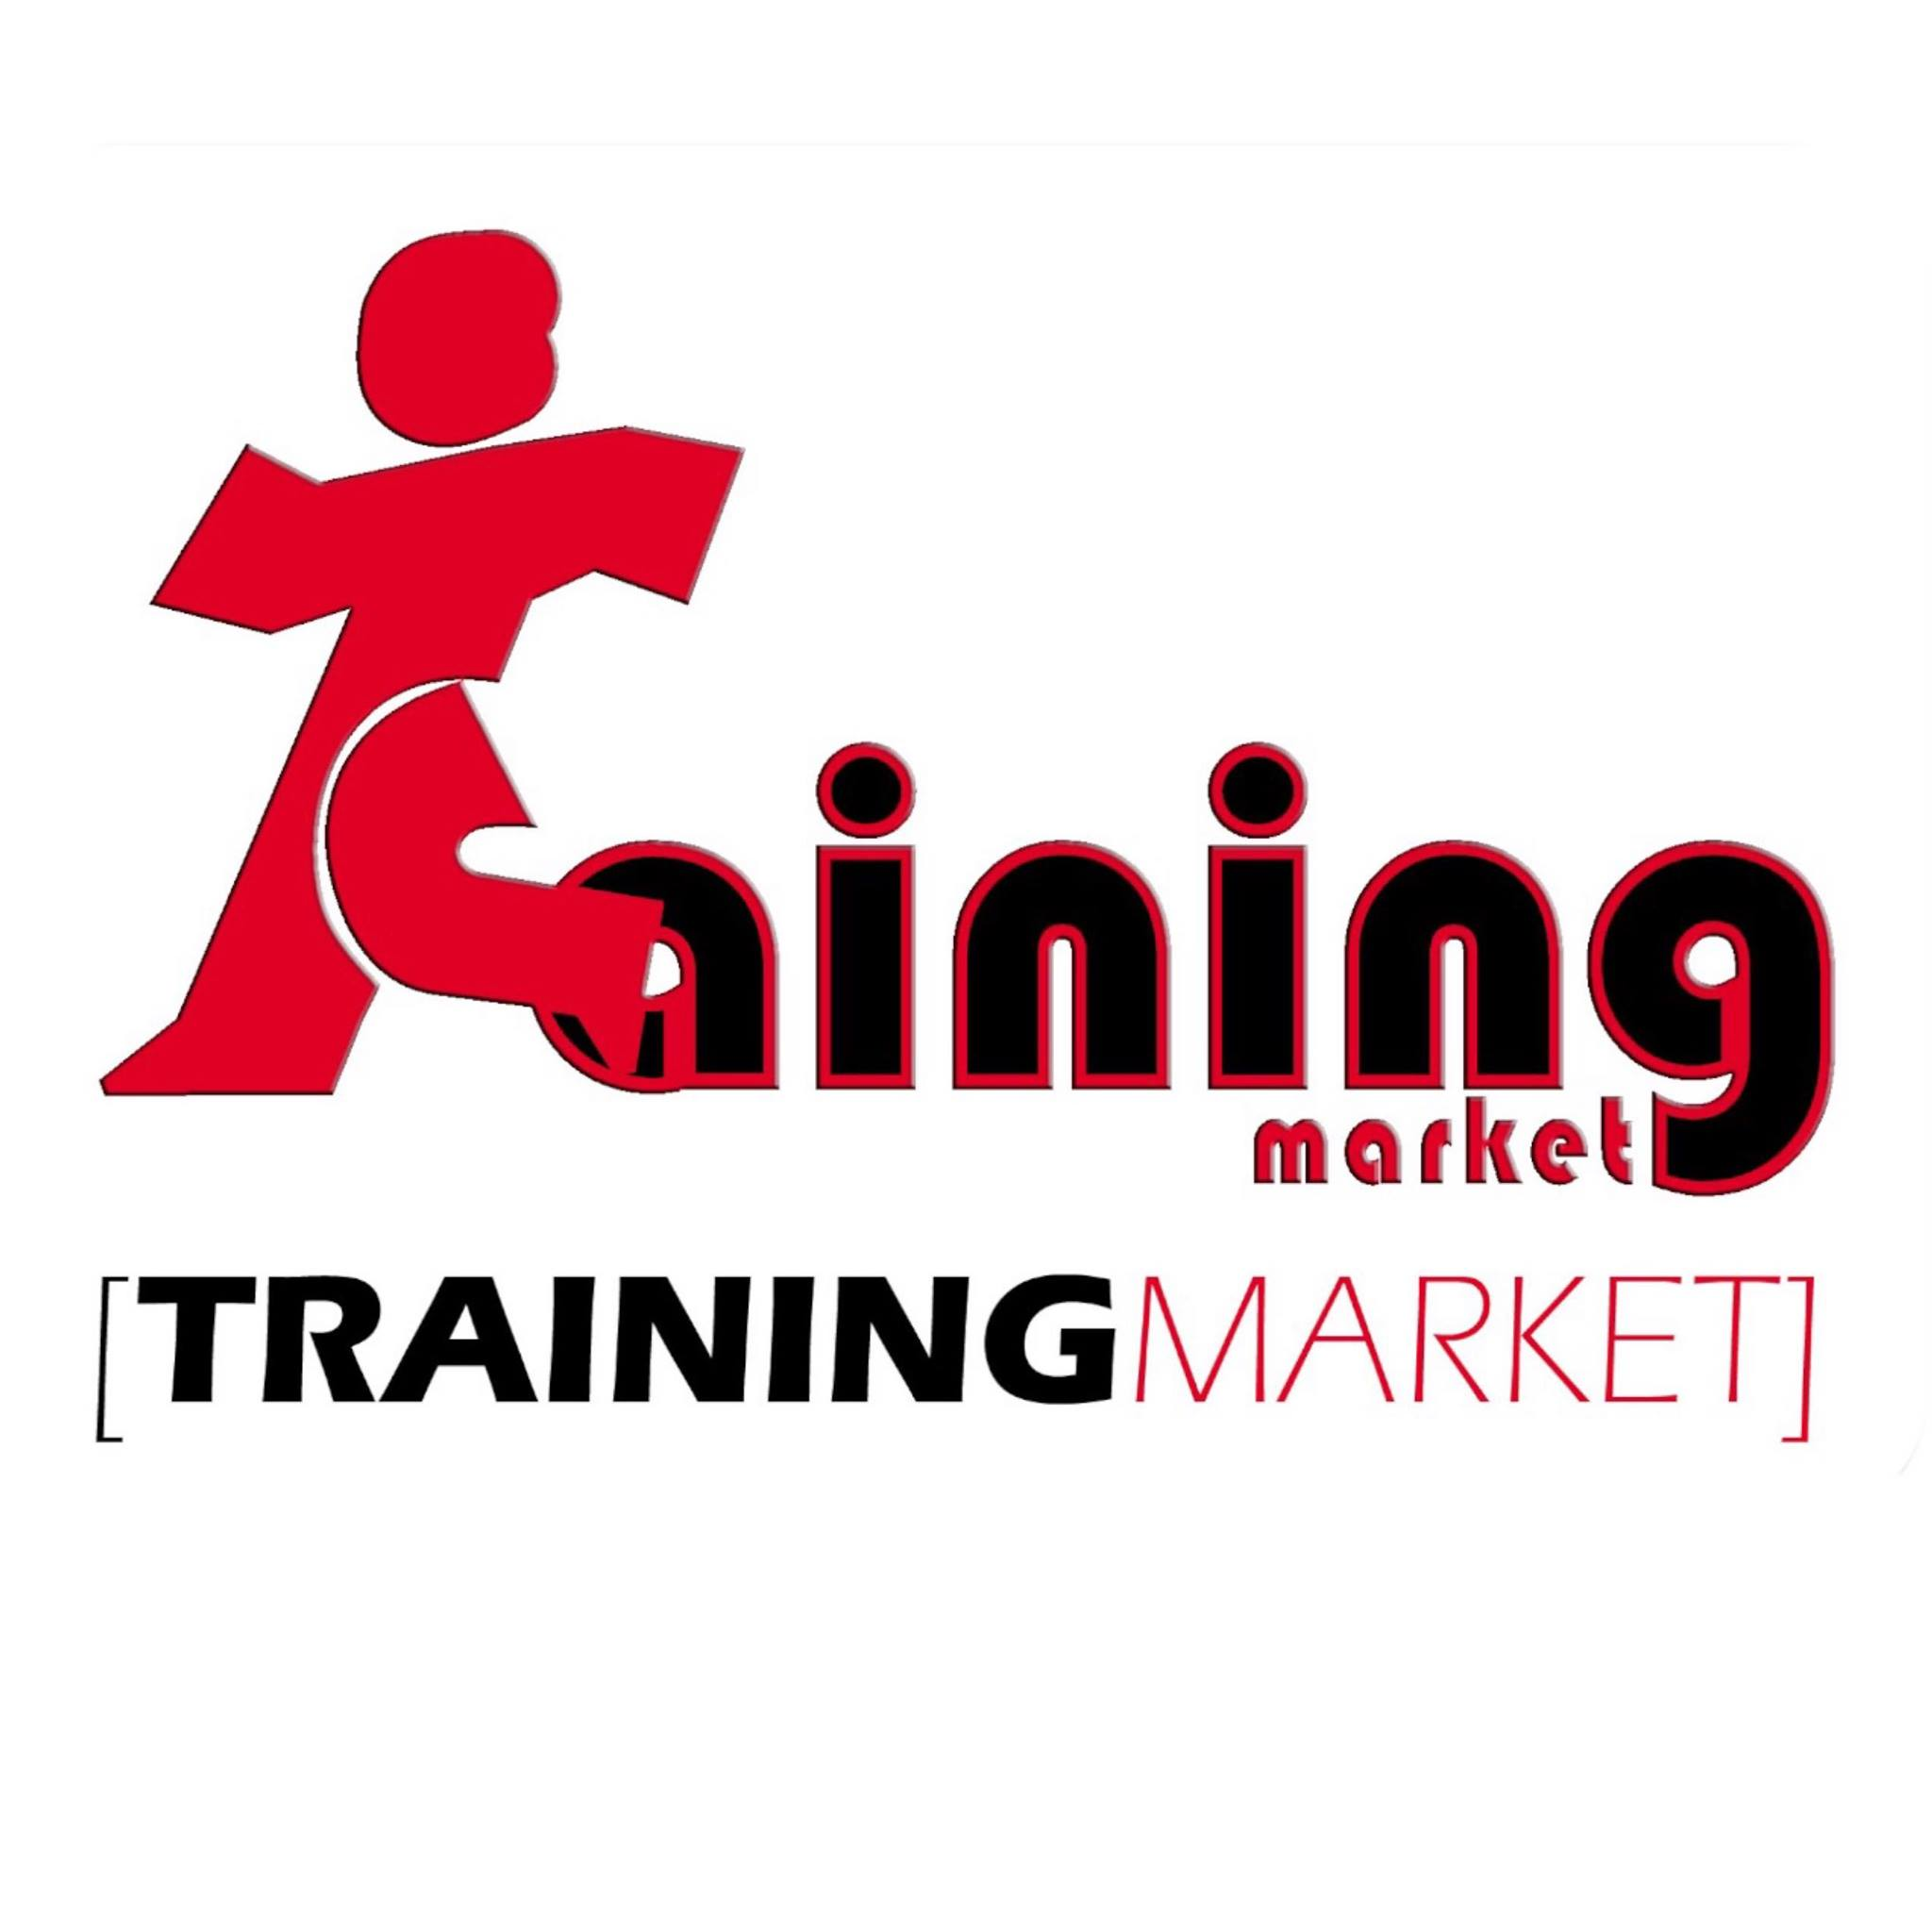 TRAINING_MARKET